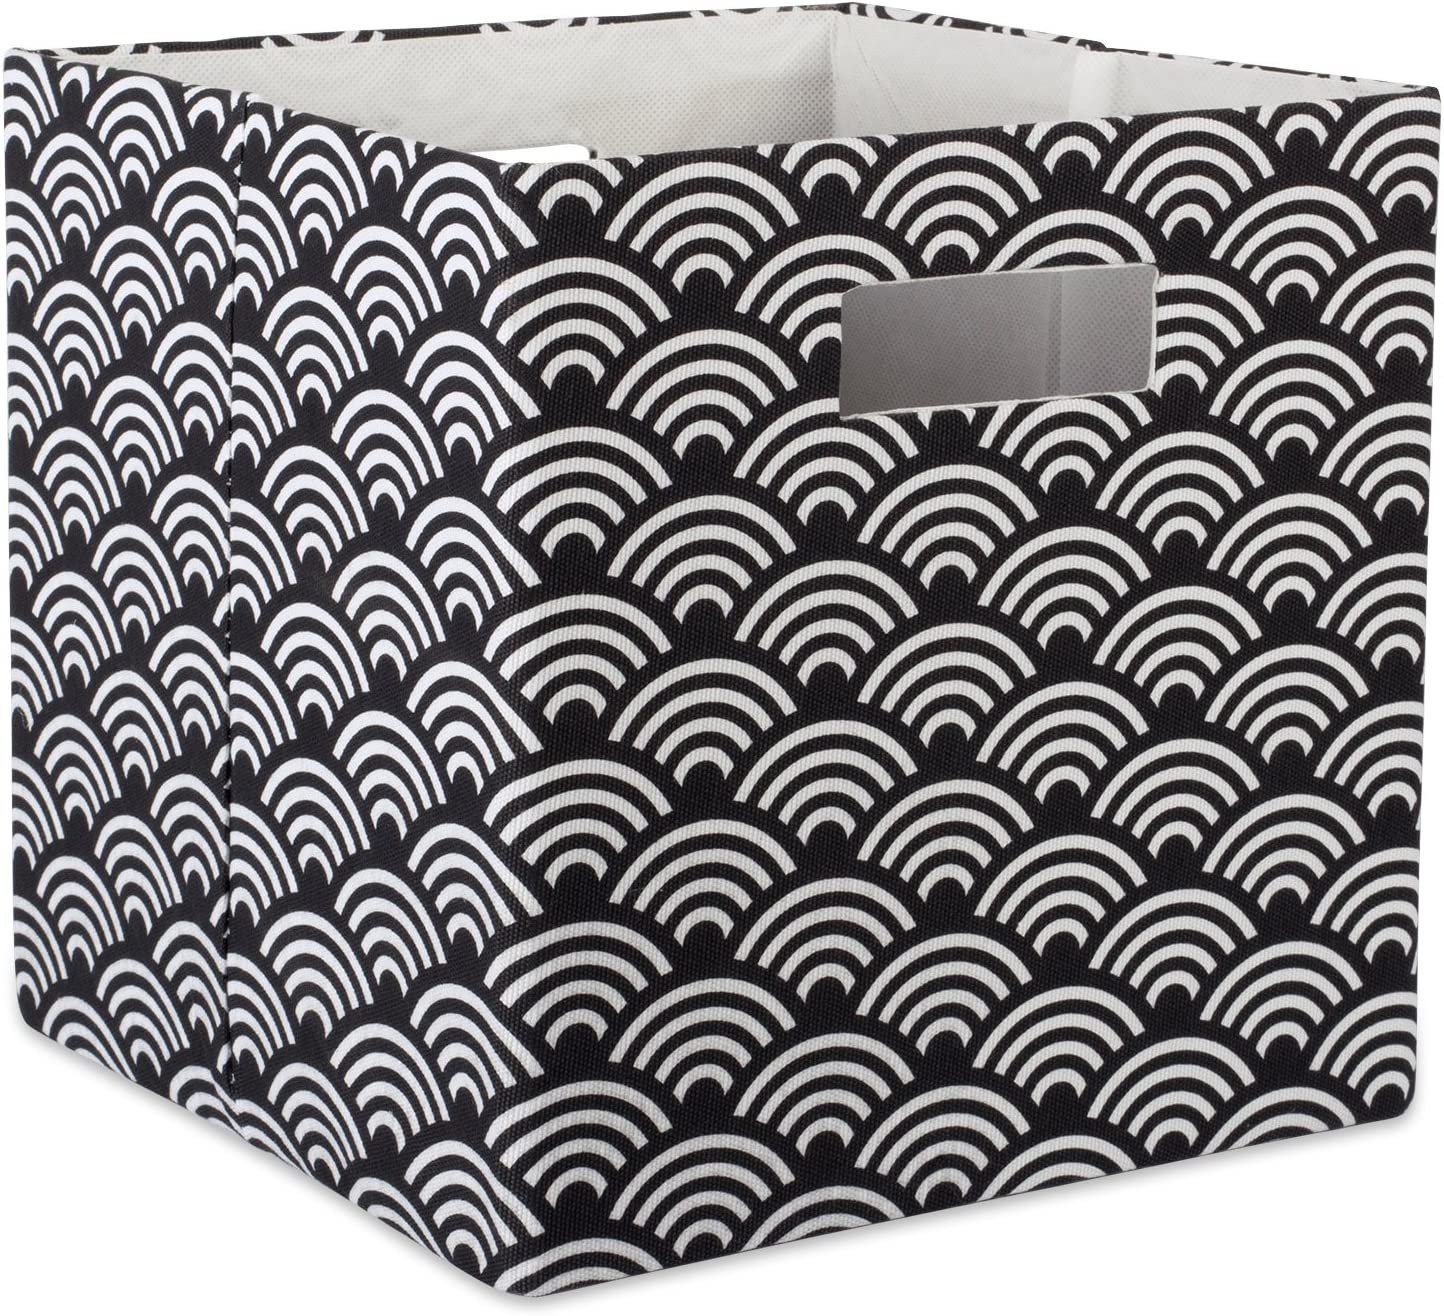 """DII Hard Sided Collapsible Fabric Storage Container for Nursery, Offices, & Home Organization, (13x13x13"""") - Waves Black"""